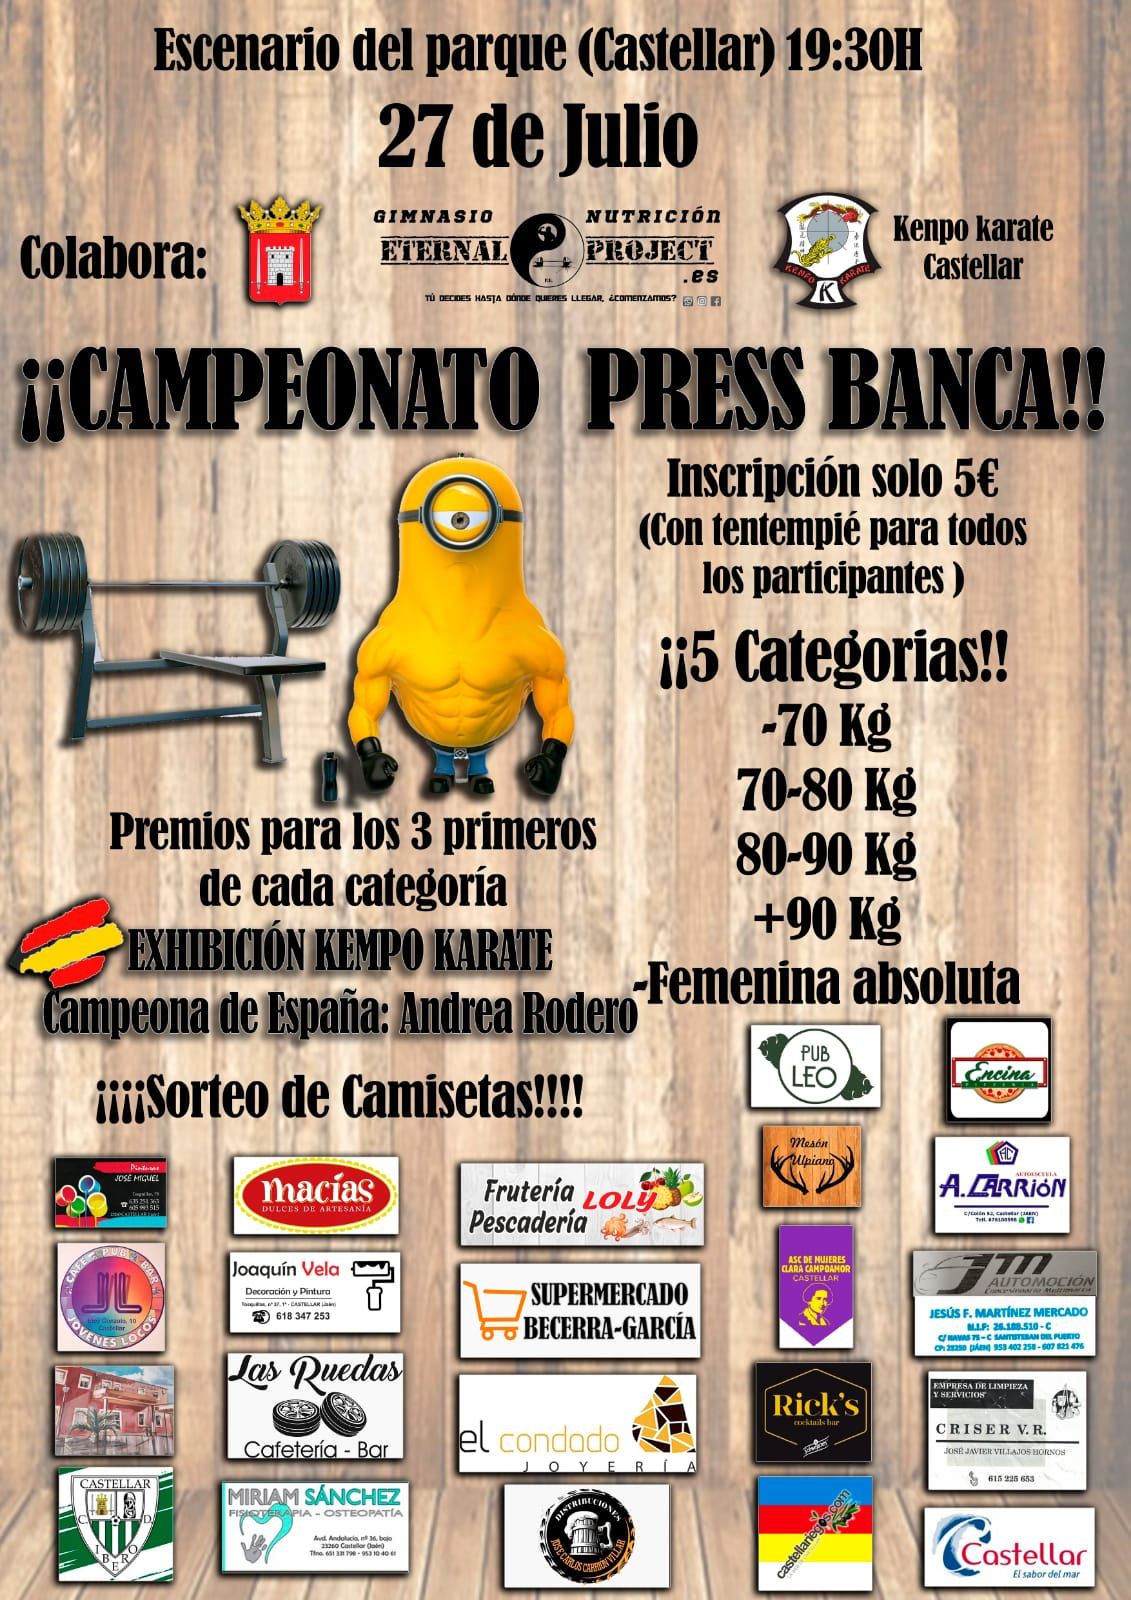 Campeonato Press Banca Castellar 2019